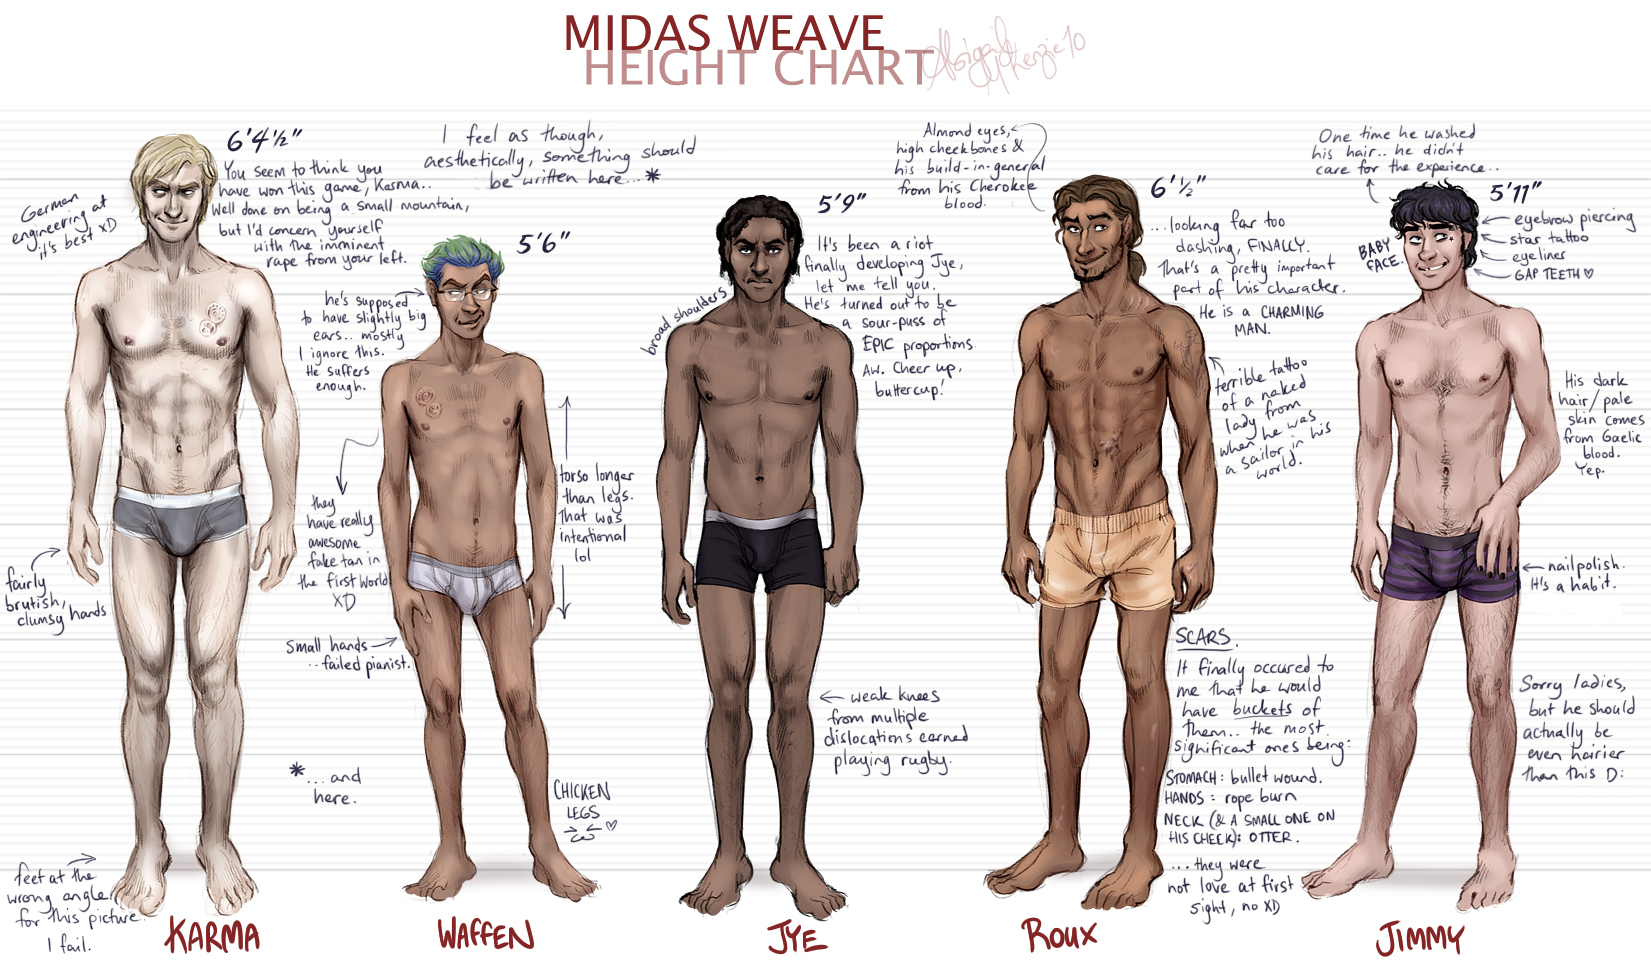 men height chart: Mw height chart by eeba ism on deviantart